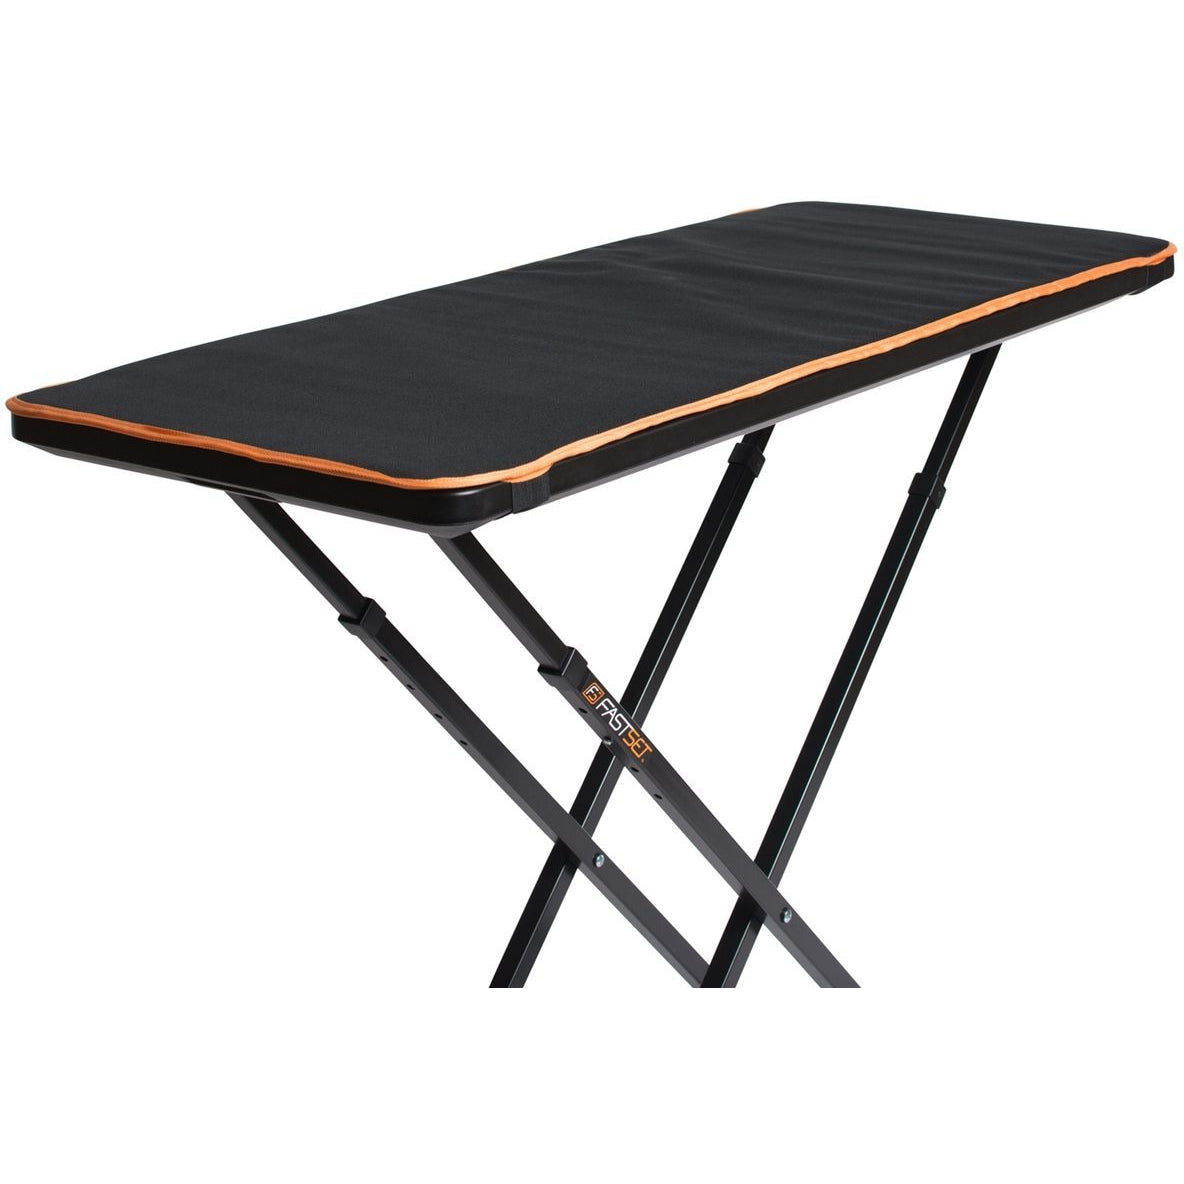 Fastset Table Pad